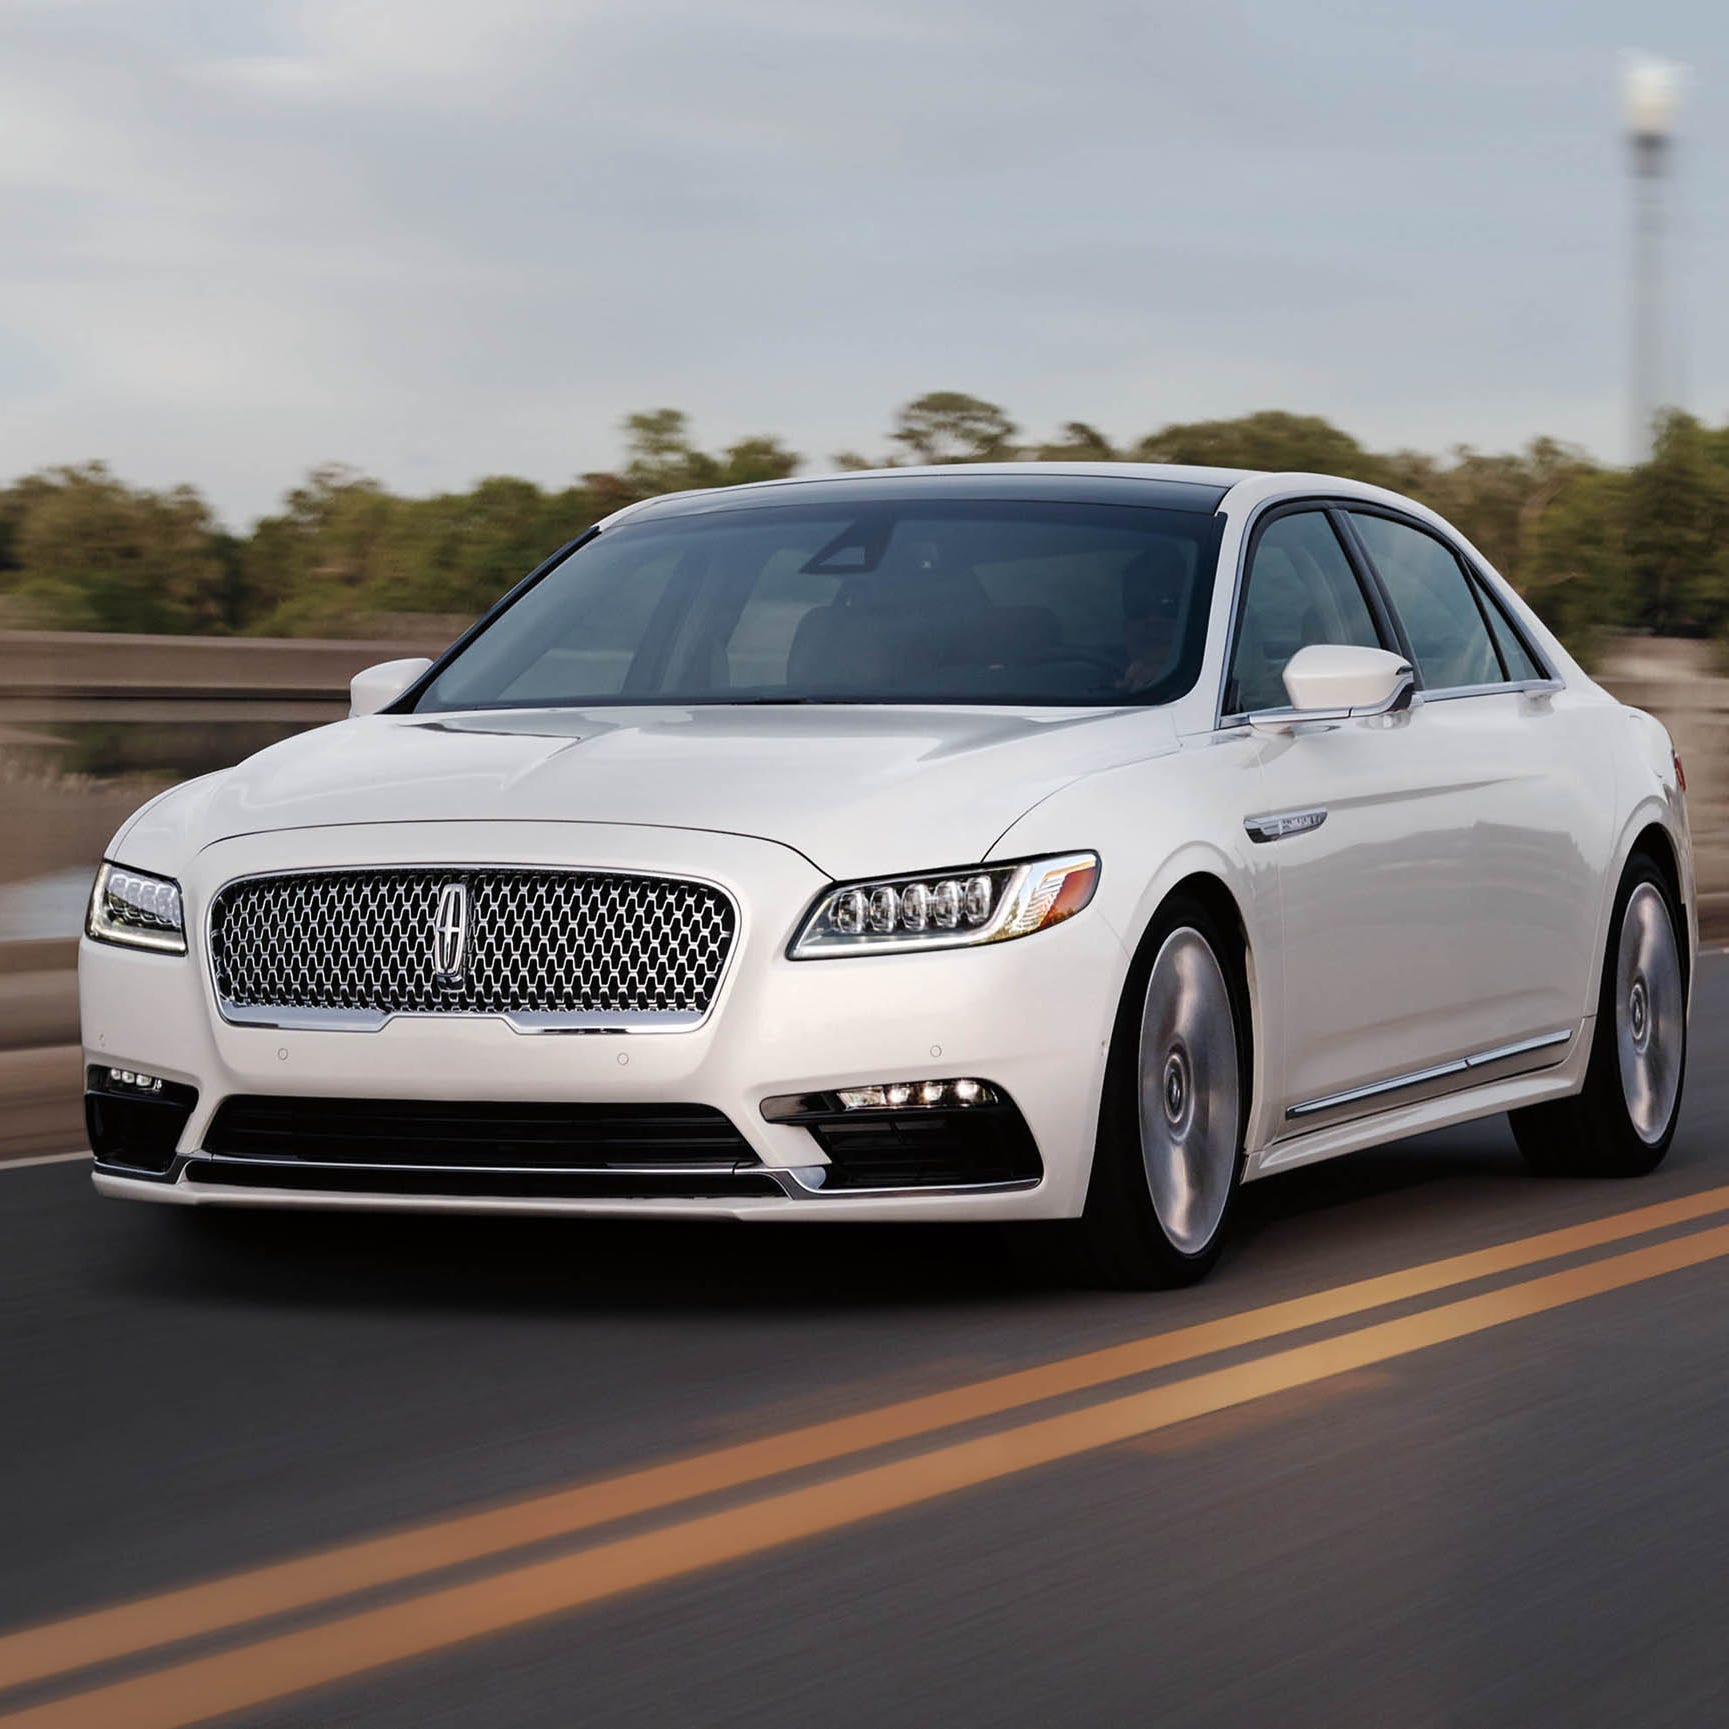 Forget the body massage, Lincoln Continental drives like buttah